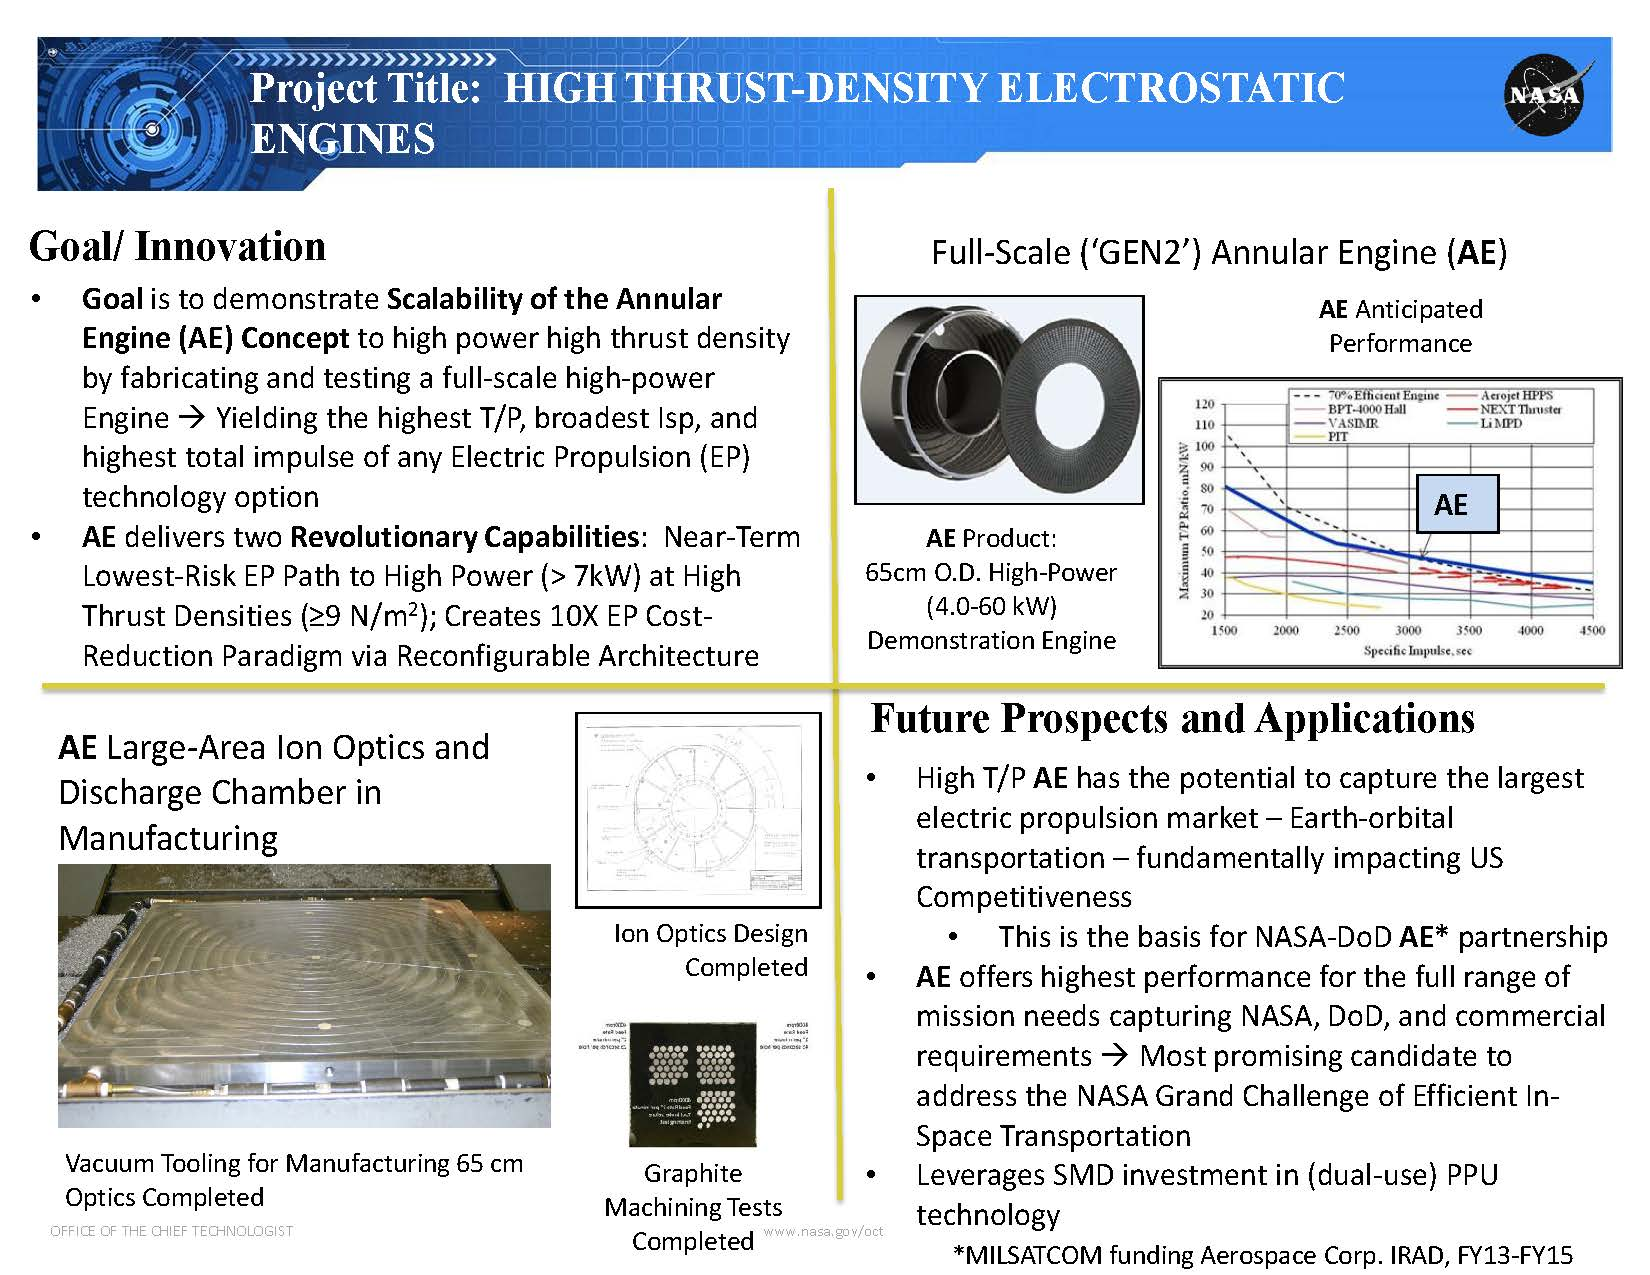 High Thrust-Density Eelectrostaic Engines Project